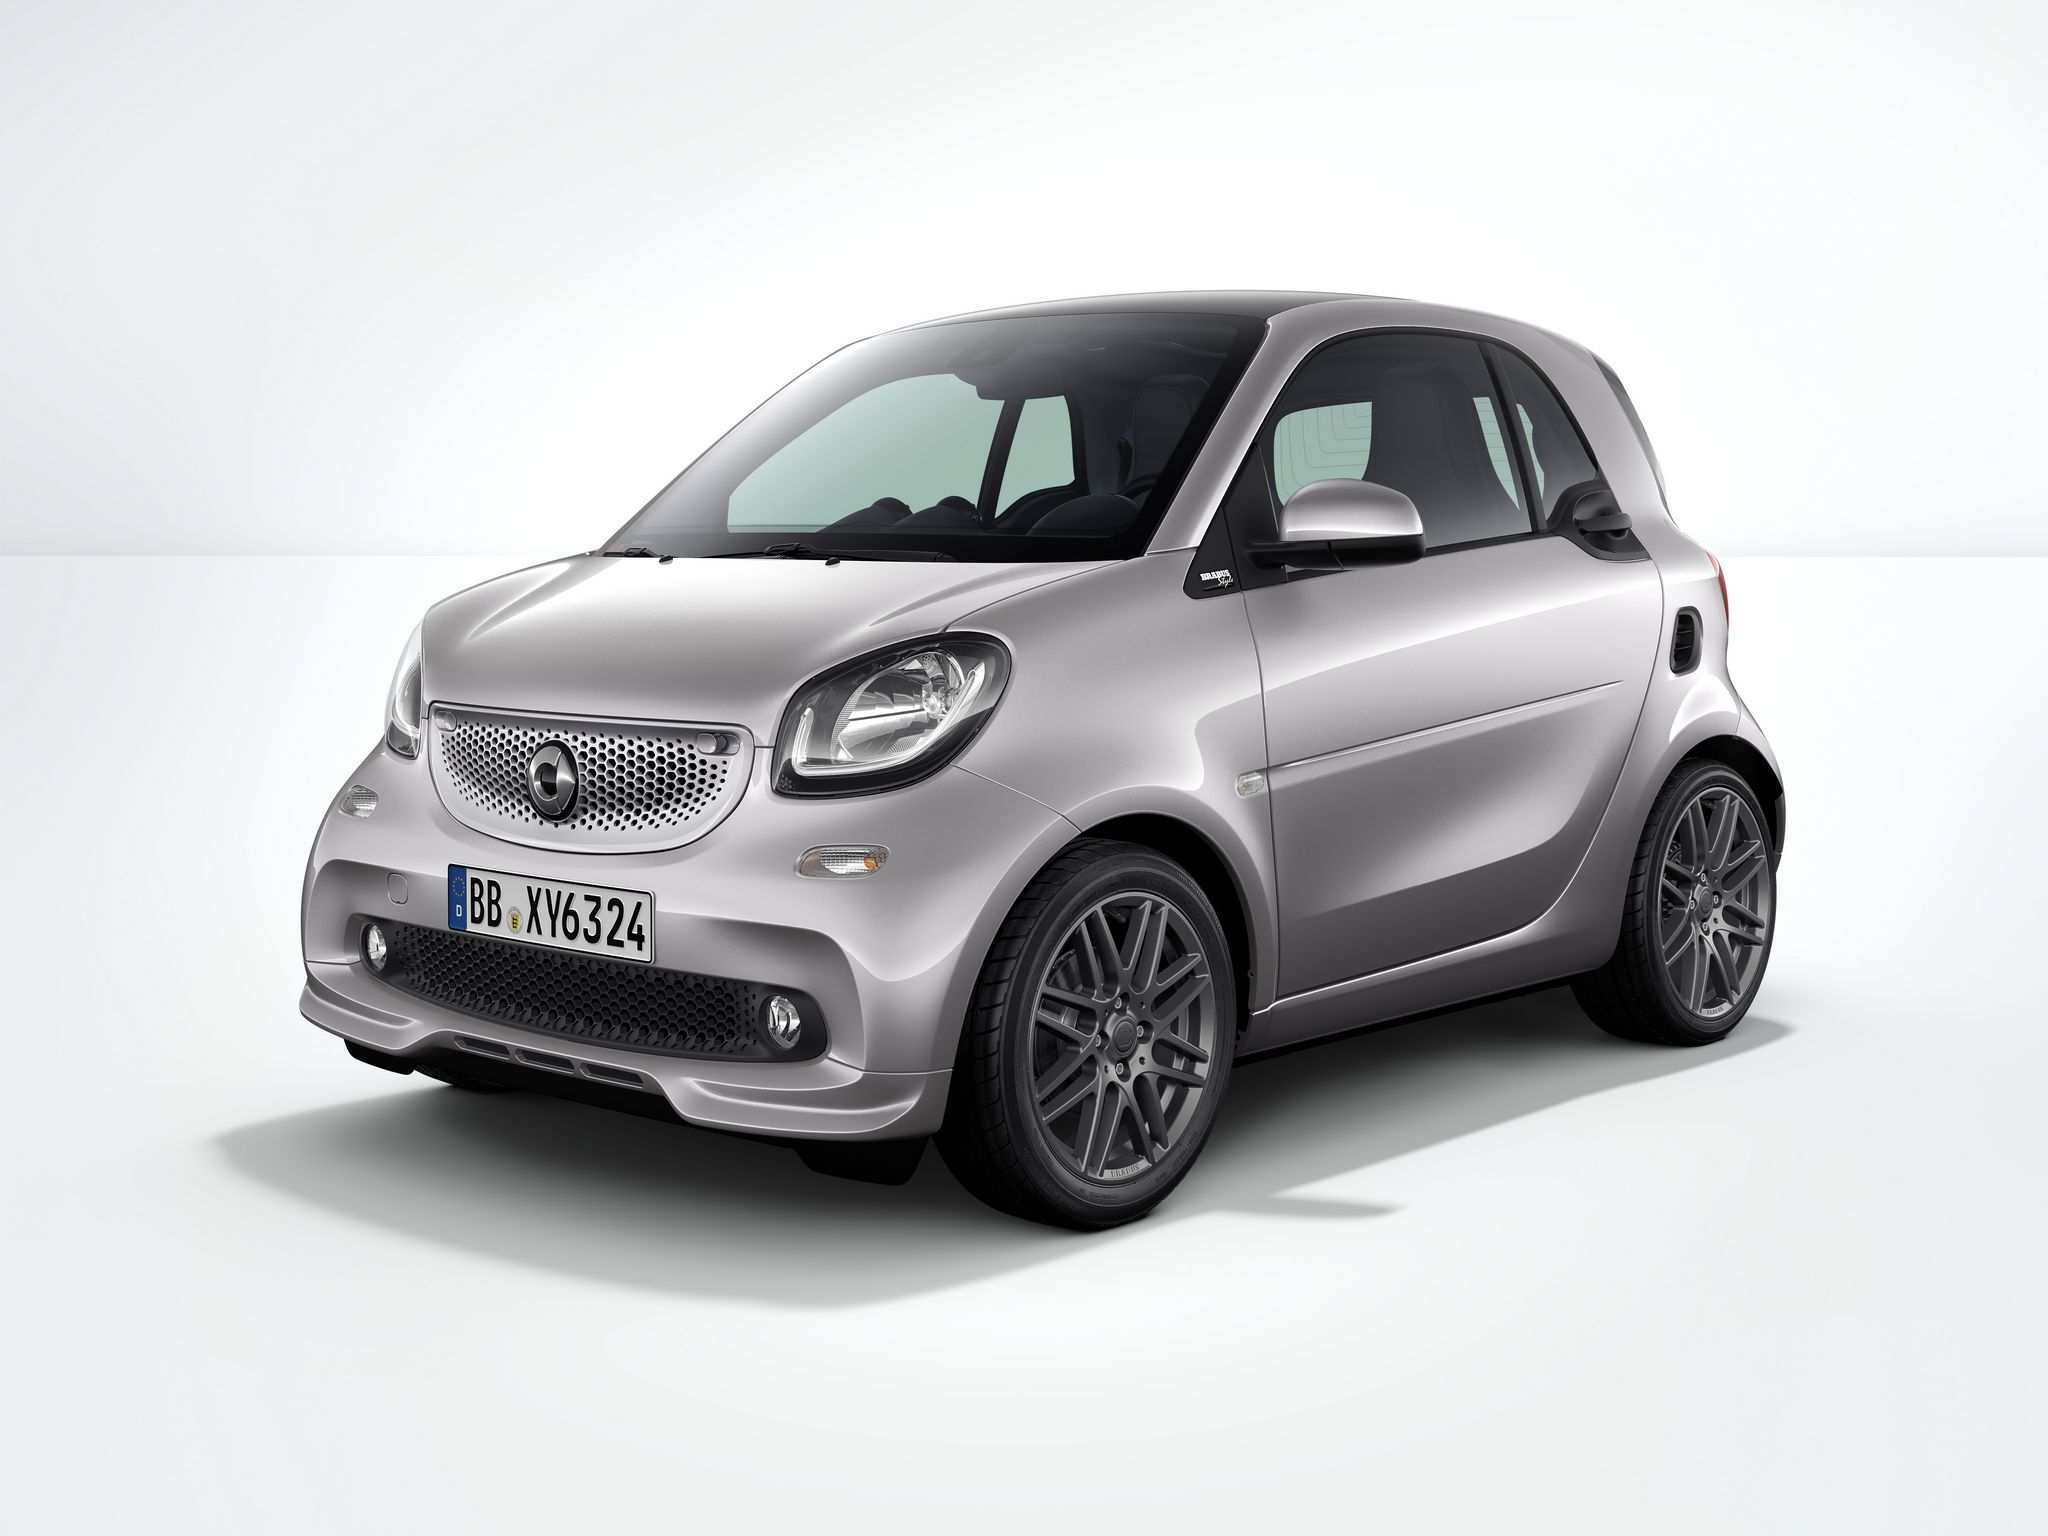 18 New 2019 Smart Fortwo Price And Review